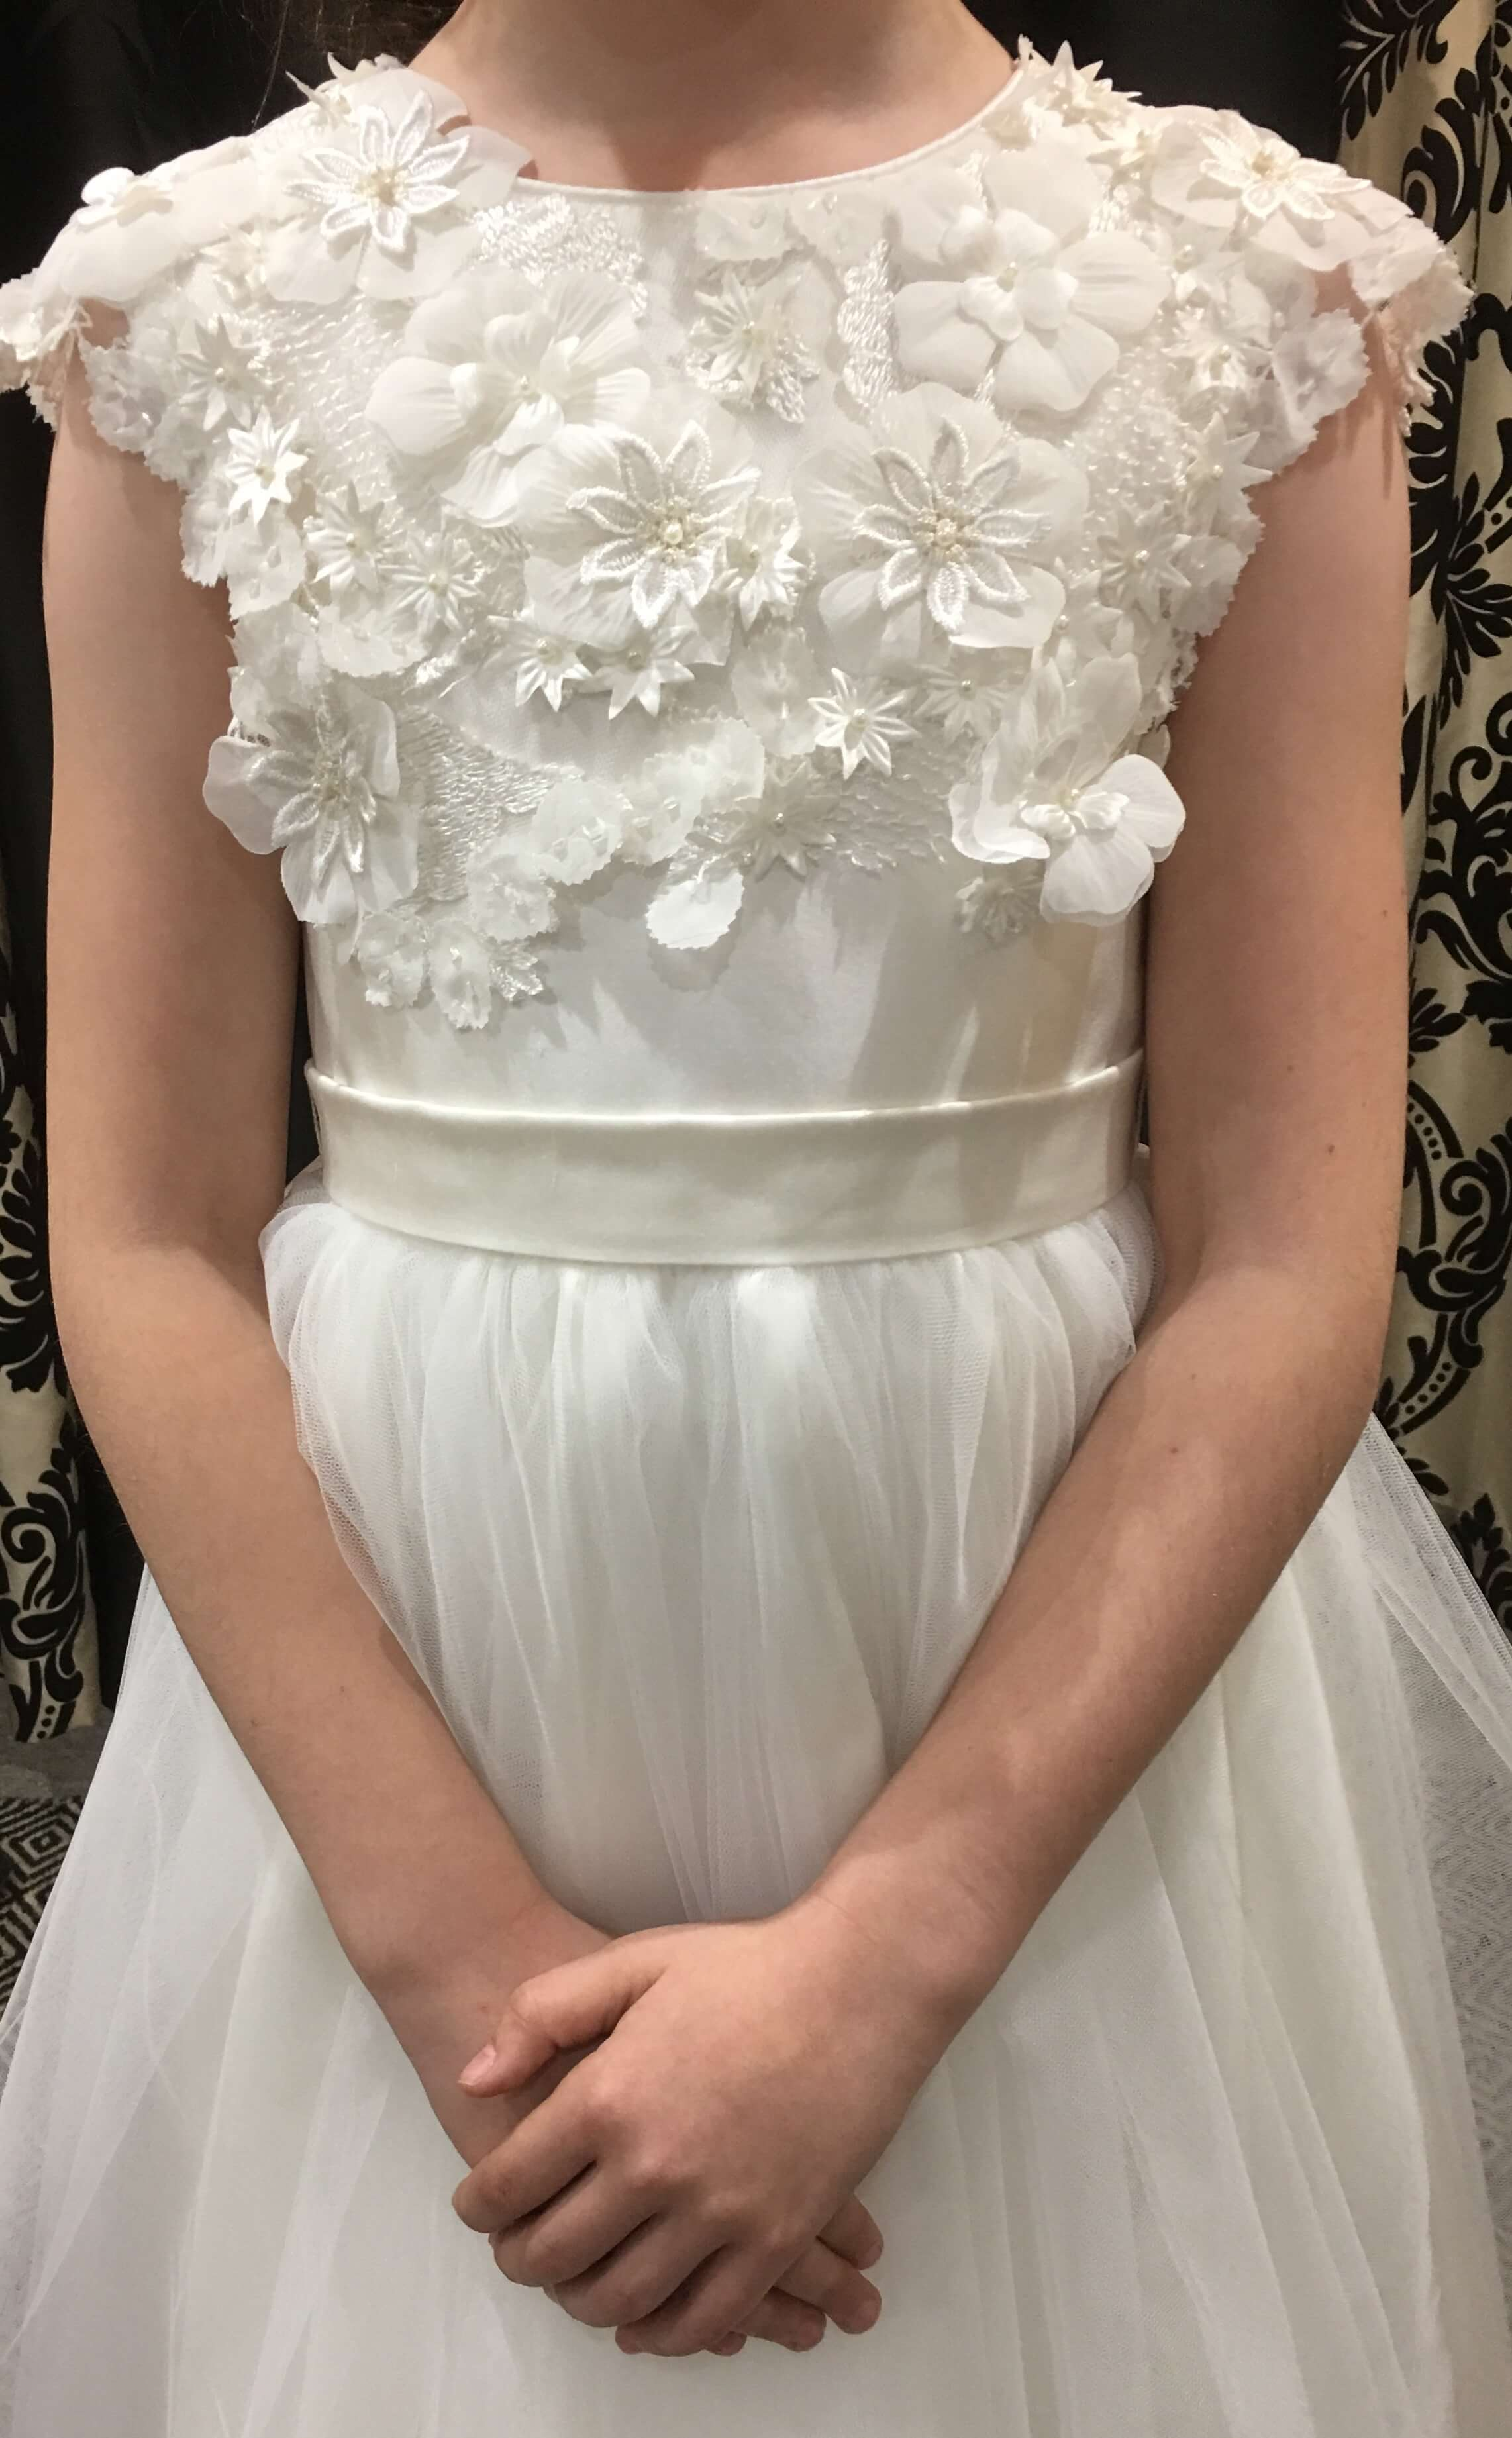 LeMarguerite Gown (a)